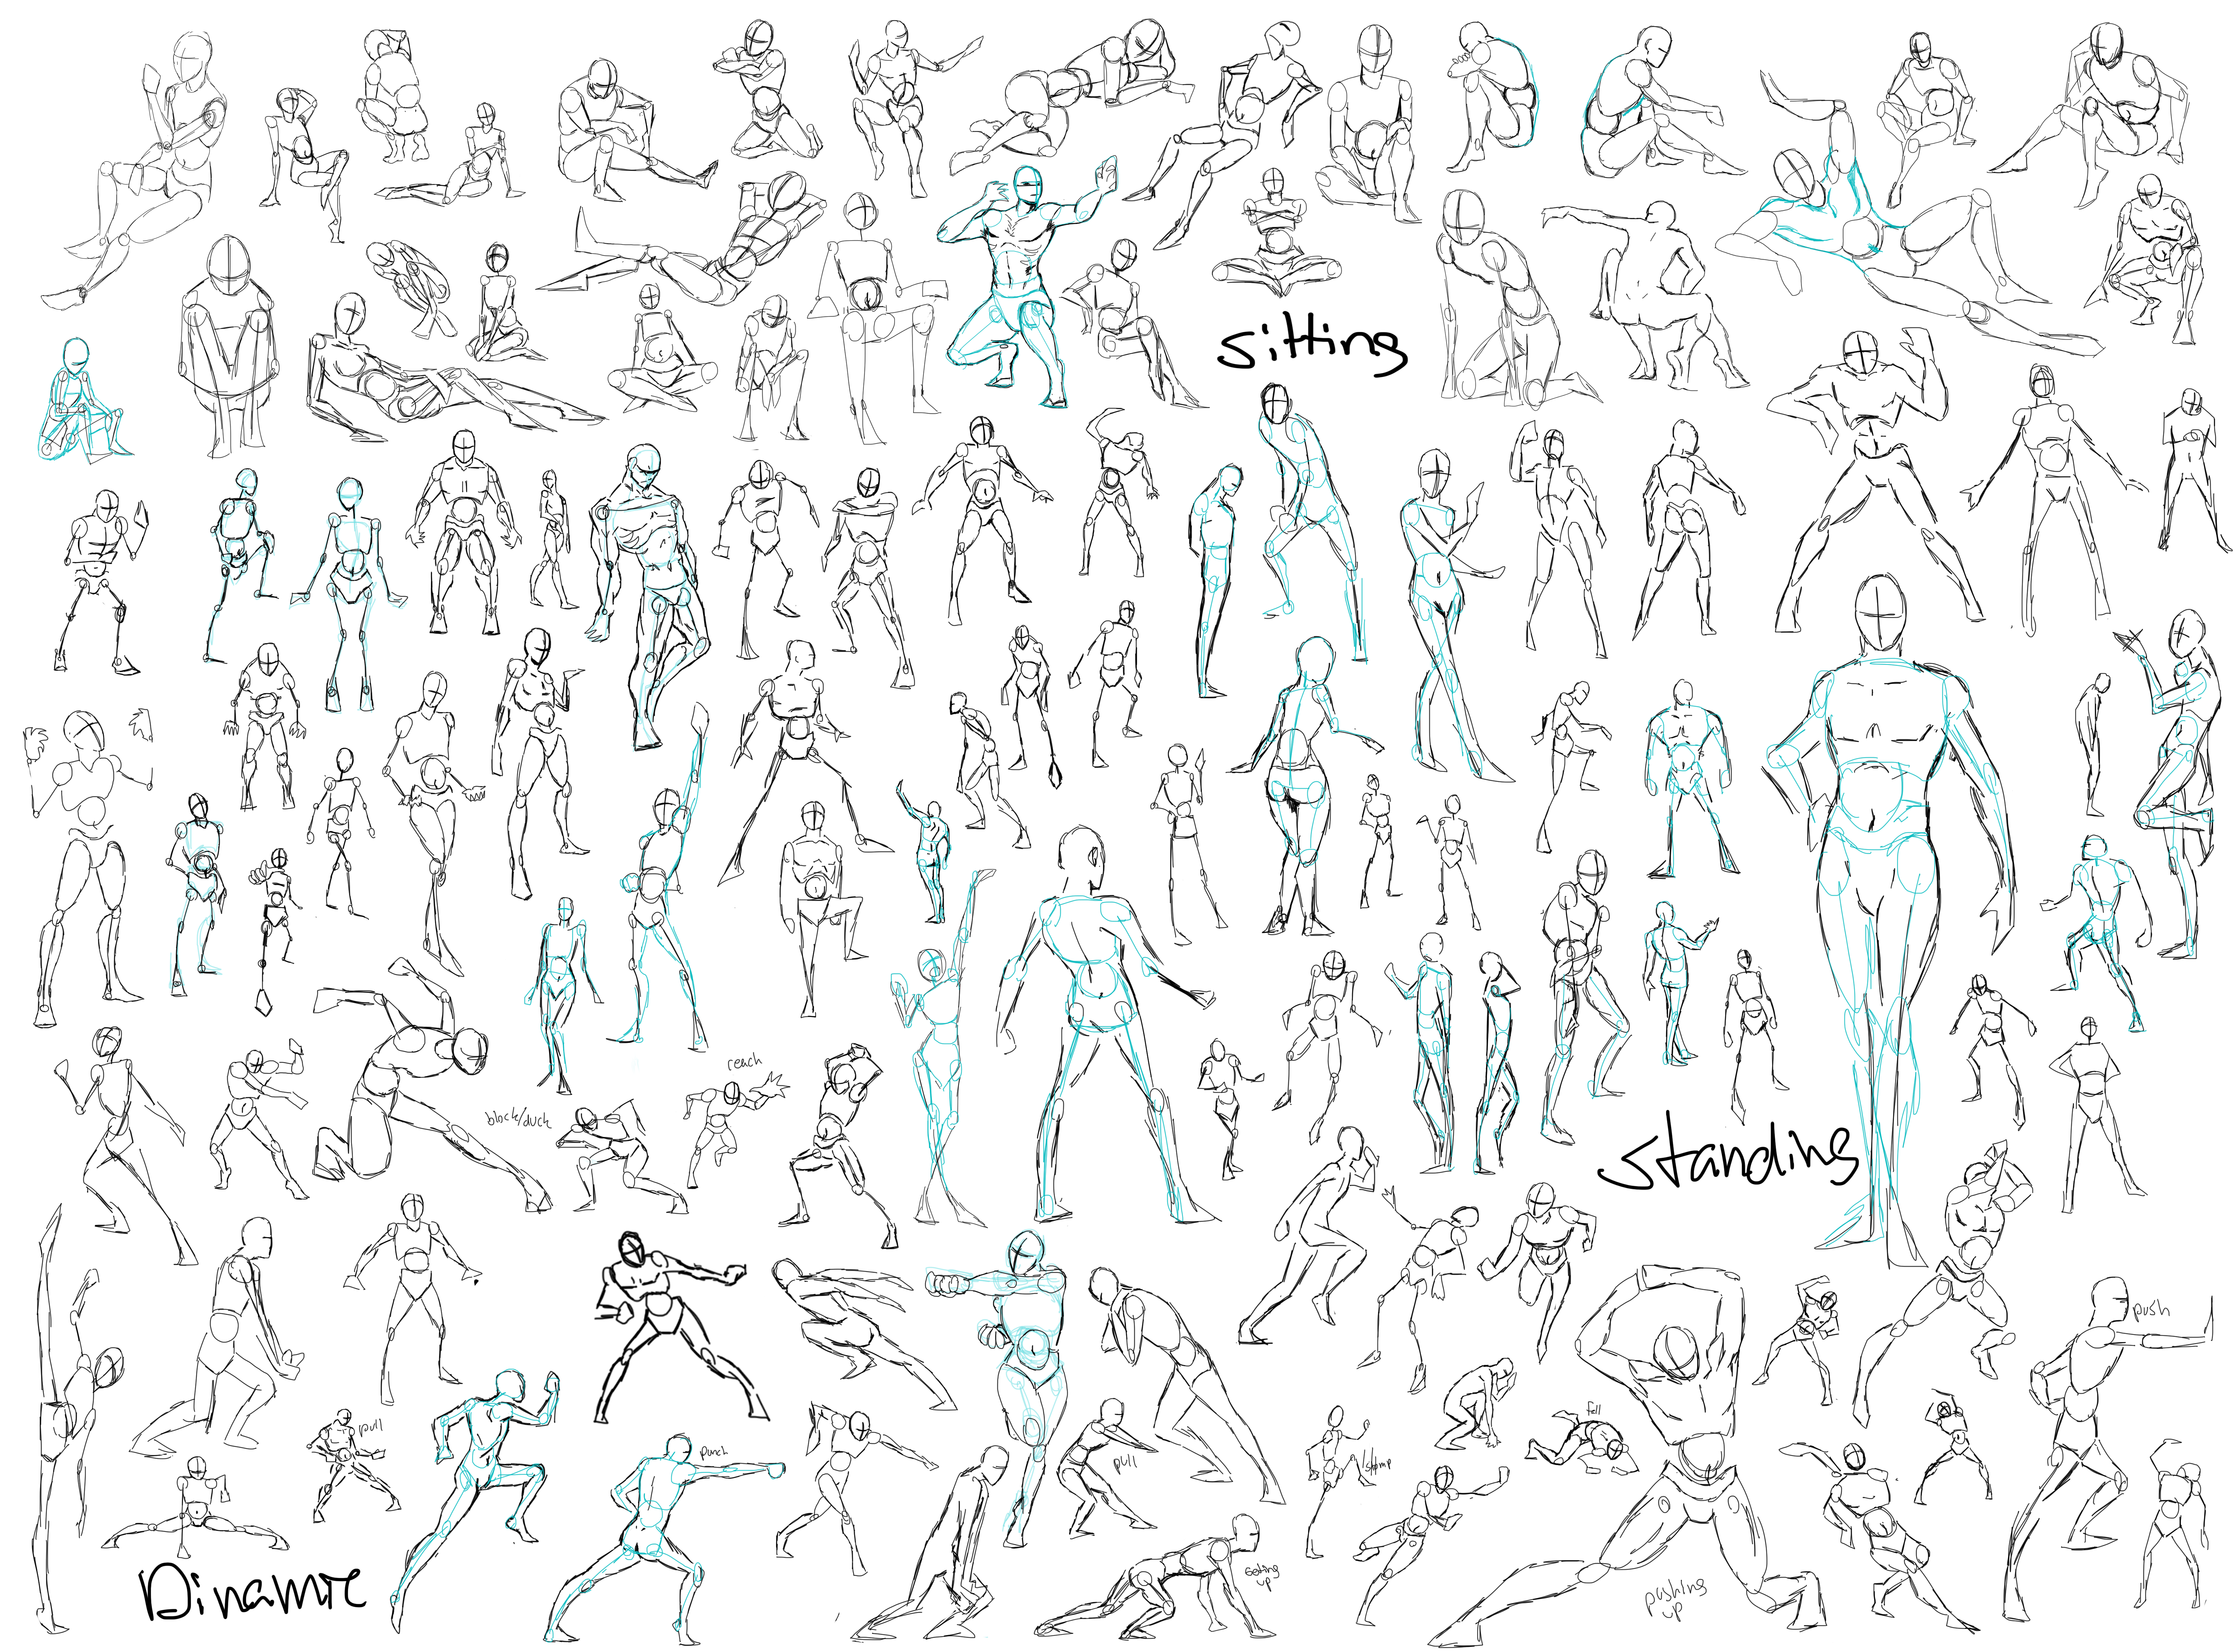 Poses For Ur Drawing Needs This Doesnt Have Every Thing But Its Got Poses  For Talking Poses Of Sitting, Standing, Running, Fighting, I Hope Its  Helpful